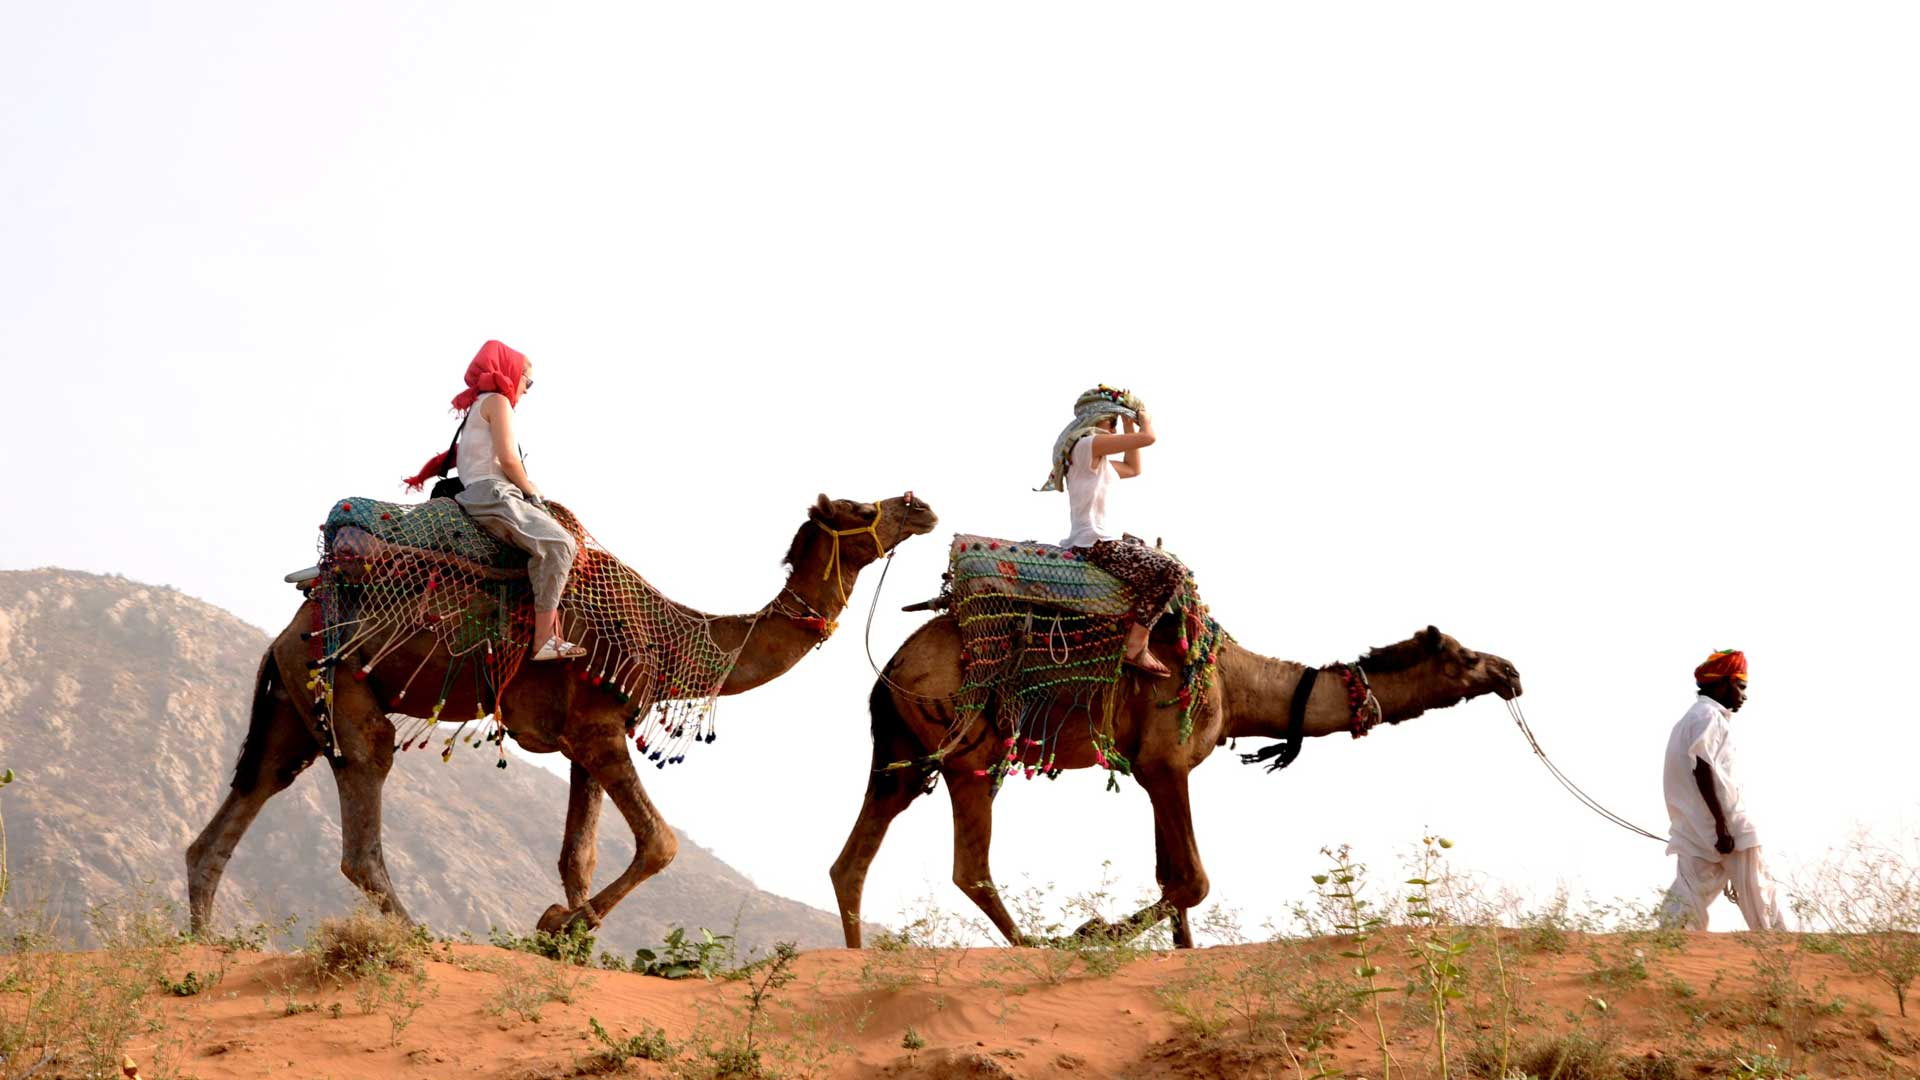 pushkar camel safari camel ride - desert cities in rajasthan